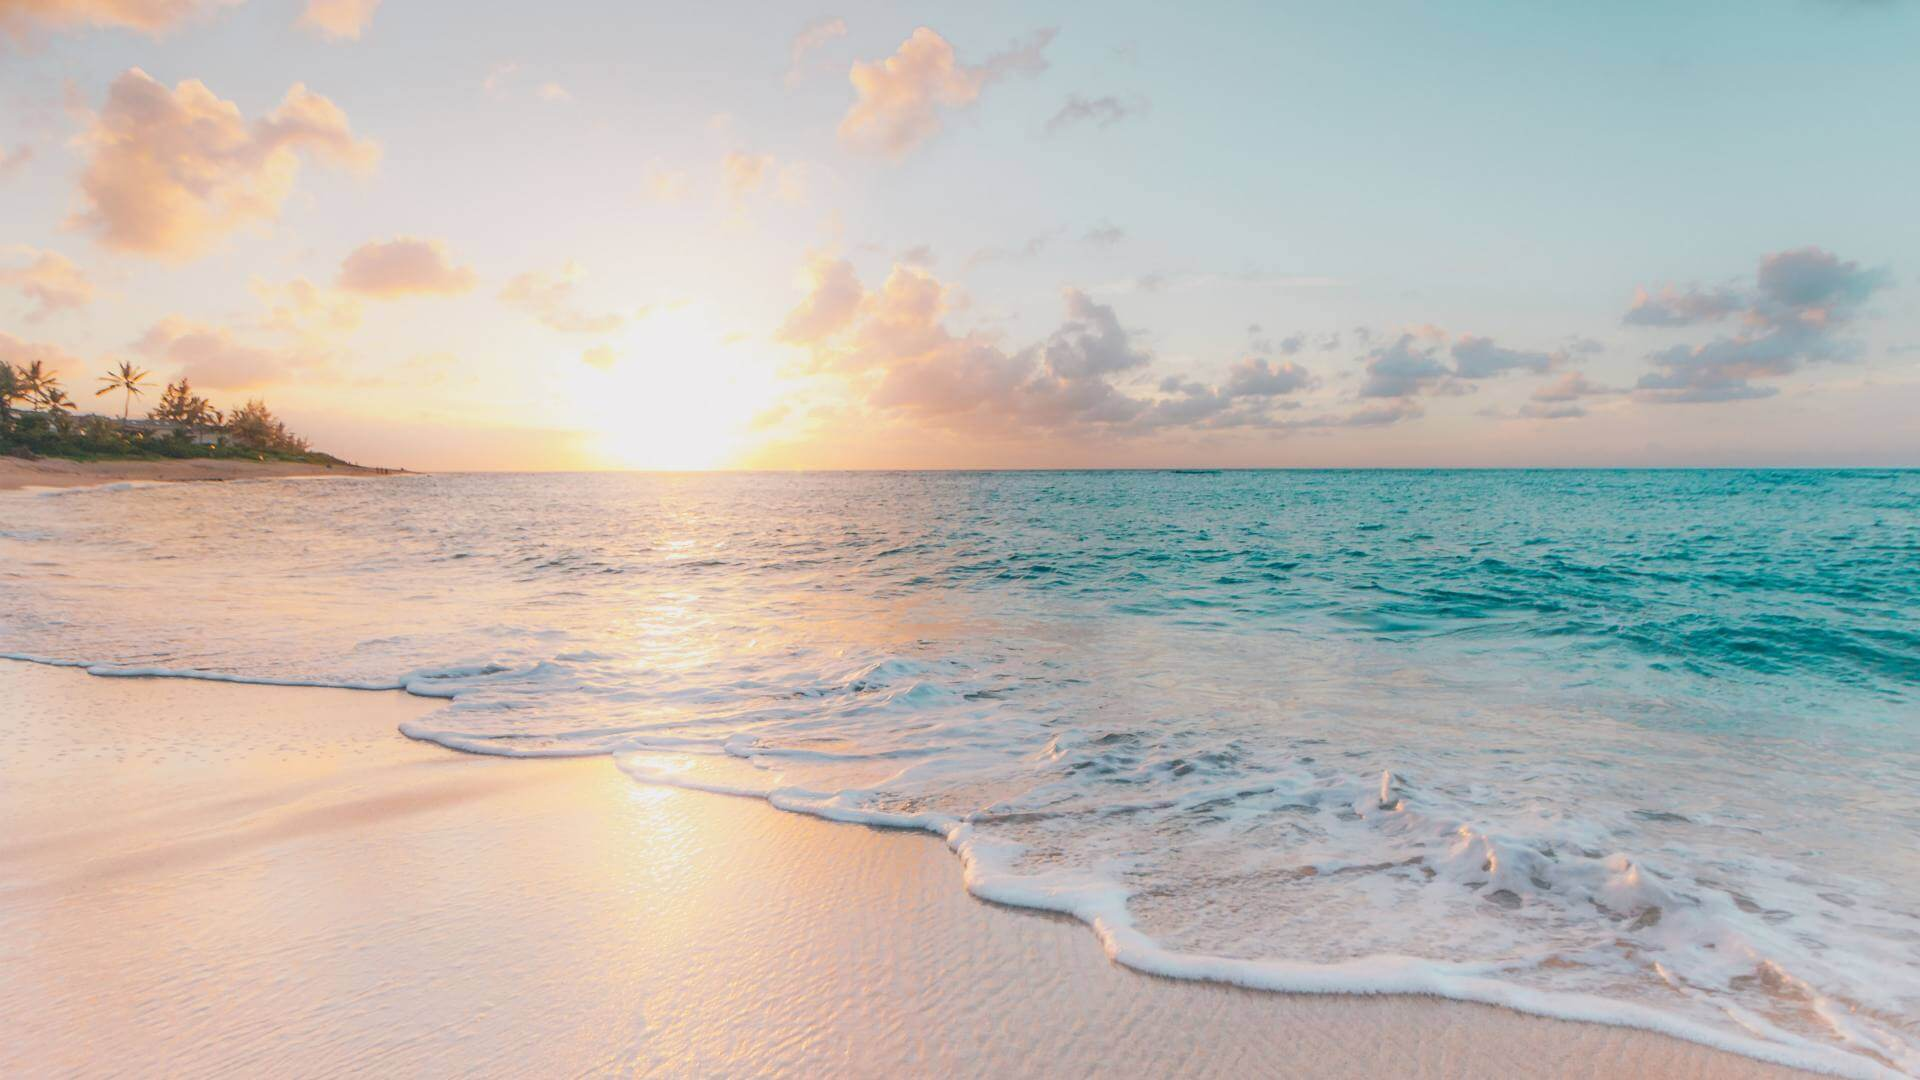 White sand beach and clear blue water during sunset